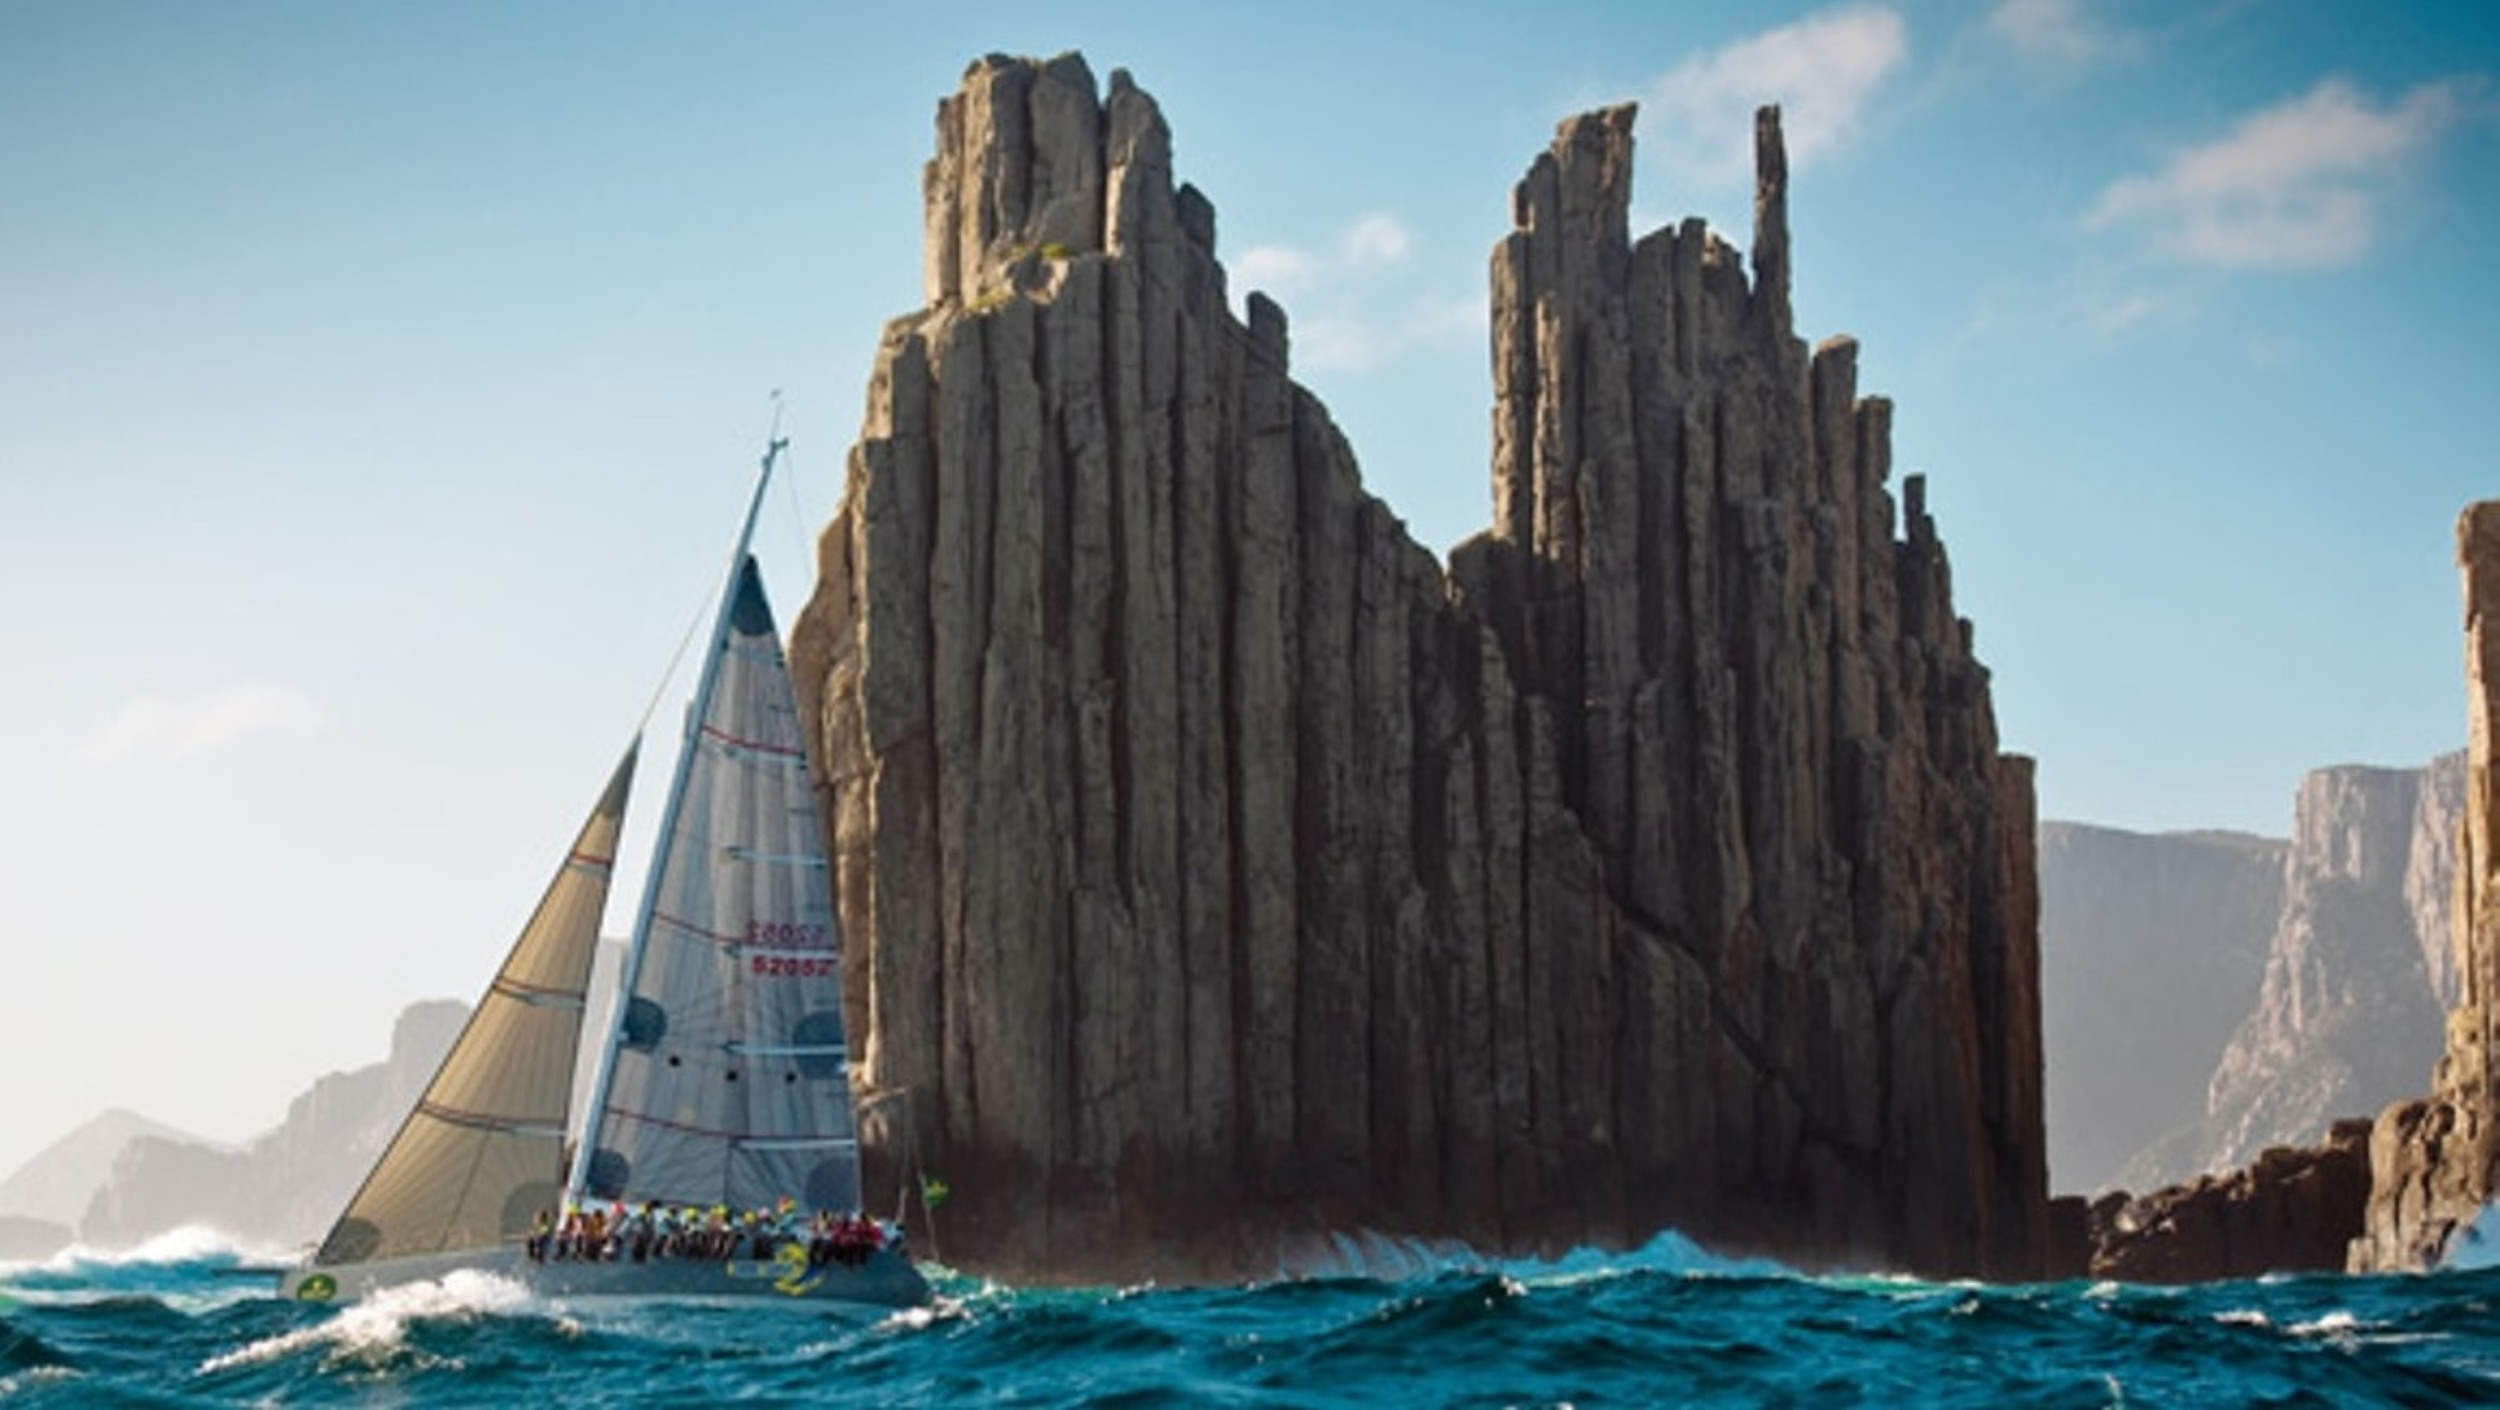 The spectacular Organ Pipes all yachts sail past in the Sydney to Hobart Race